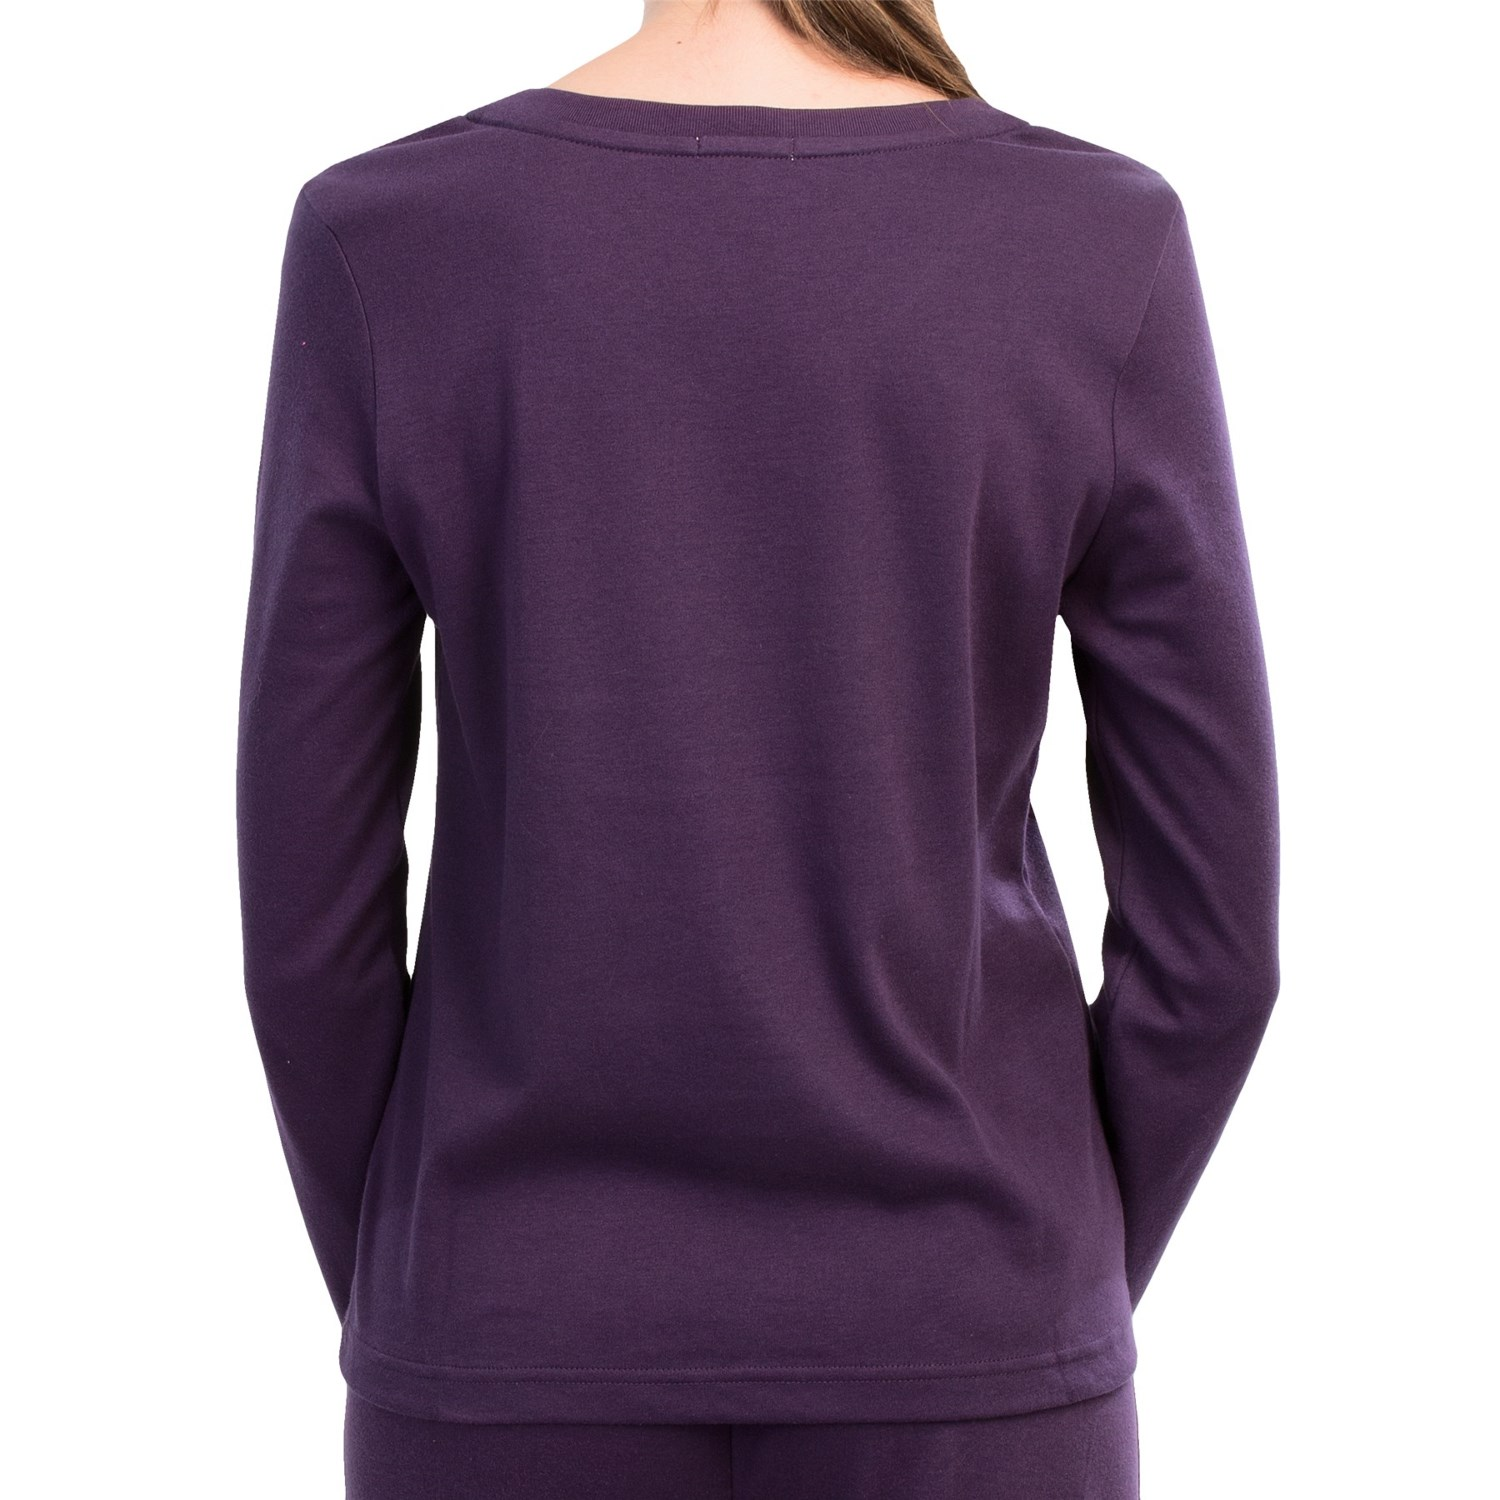 Free shipping and returns on Women's Lounge Clothing at gravitybox.ga